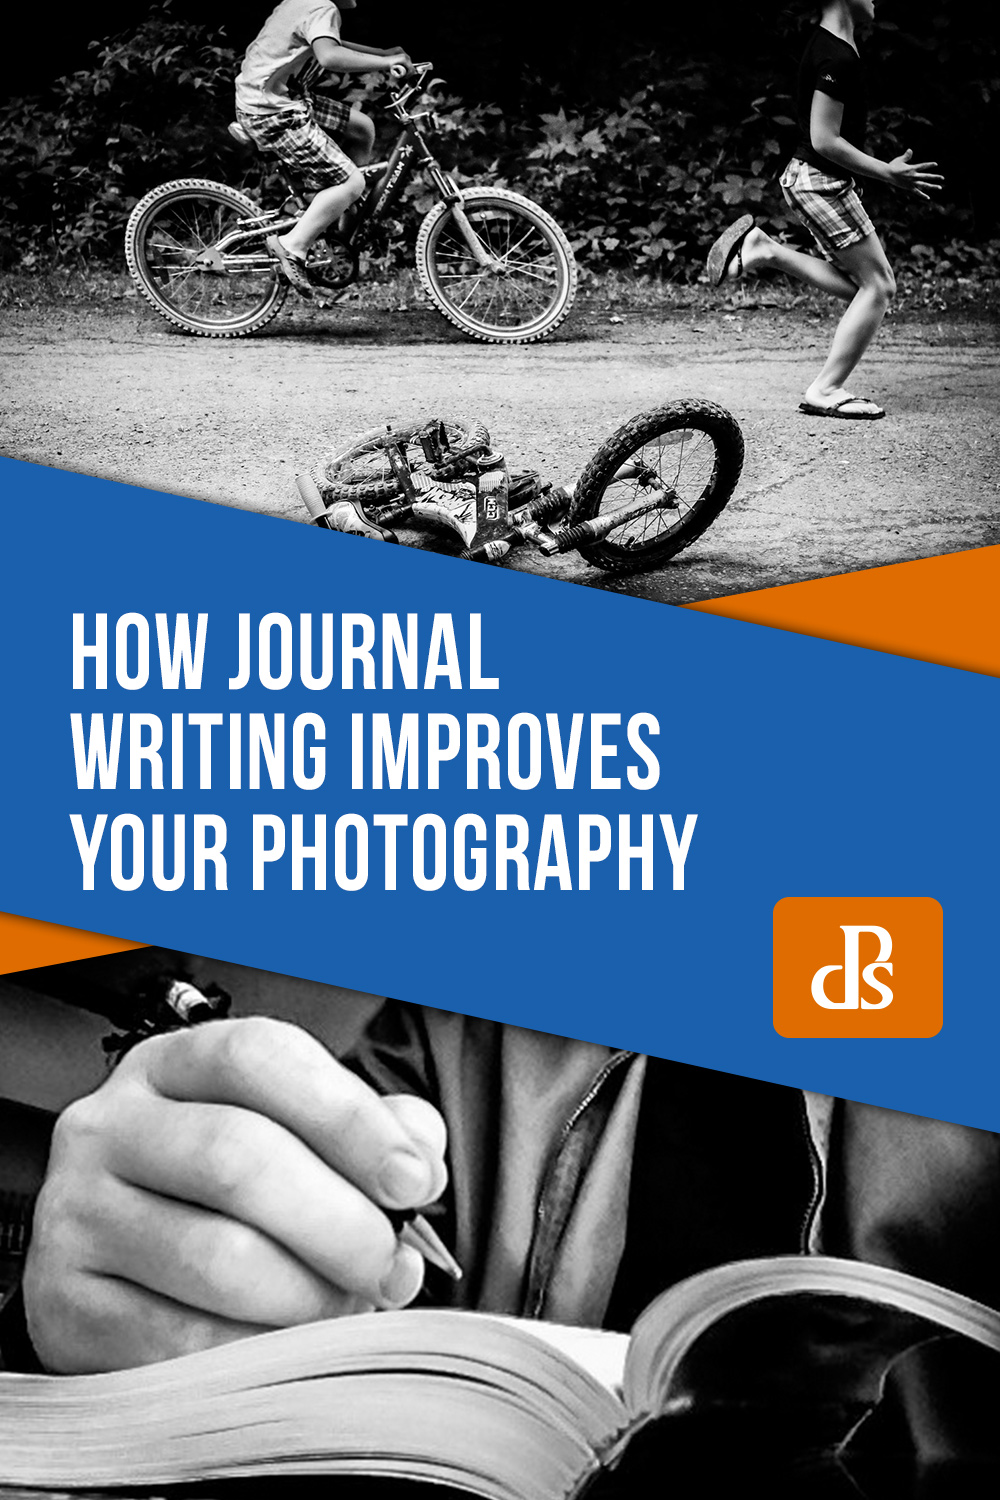 How Journal Writing Improves Your Photography